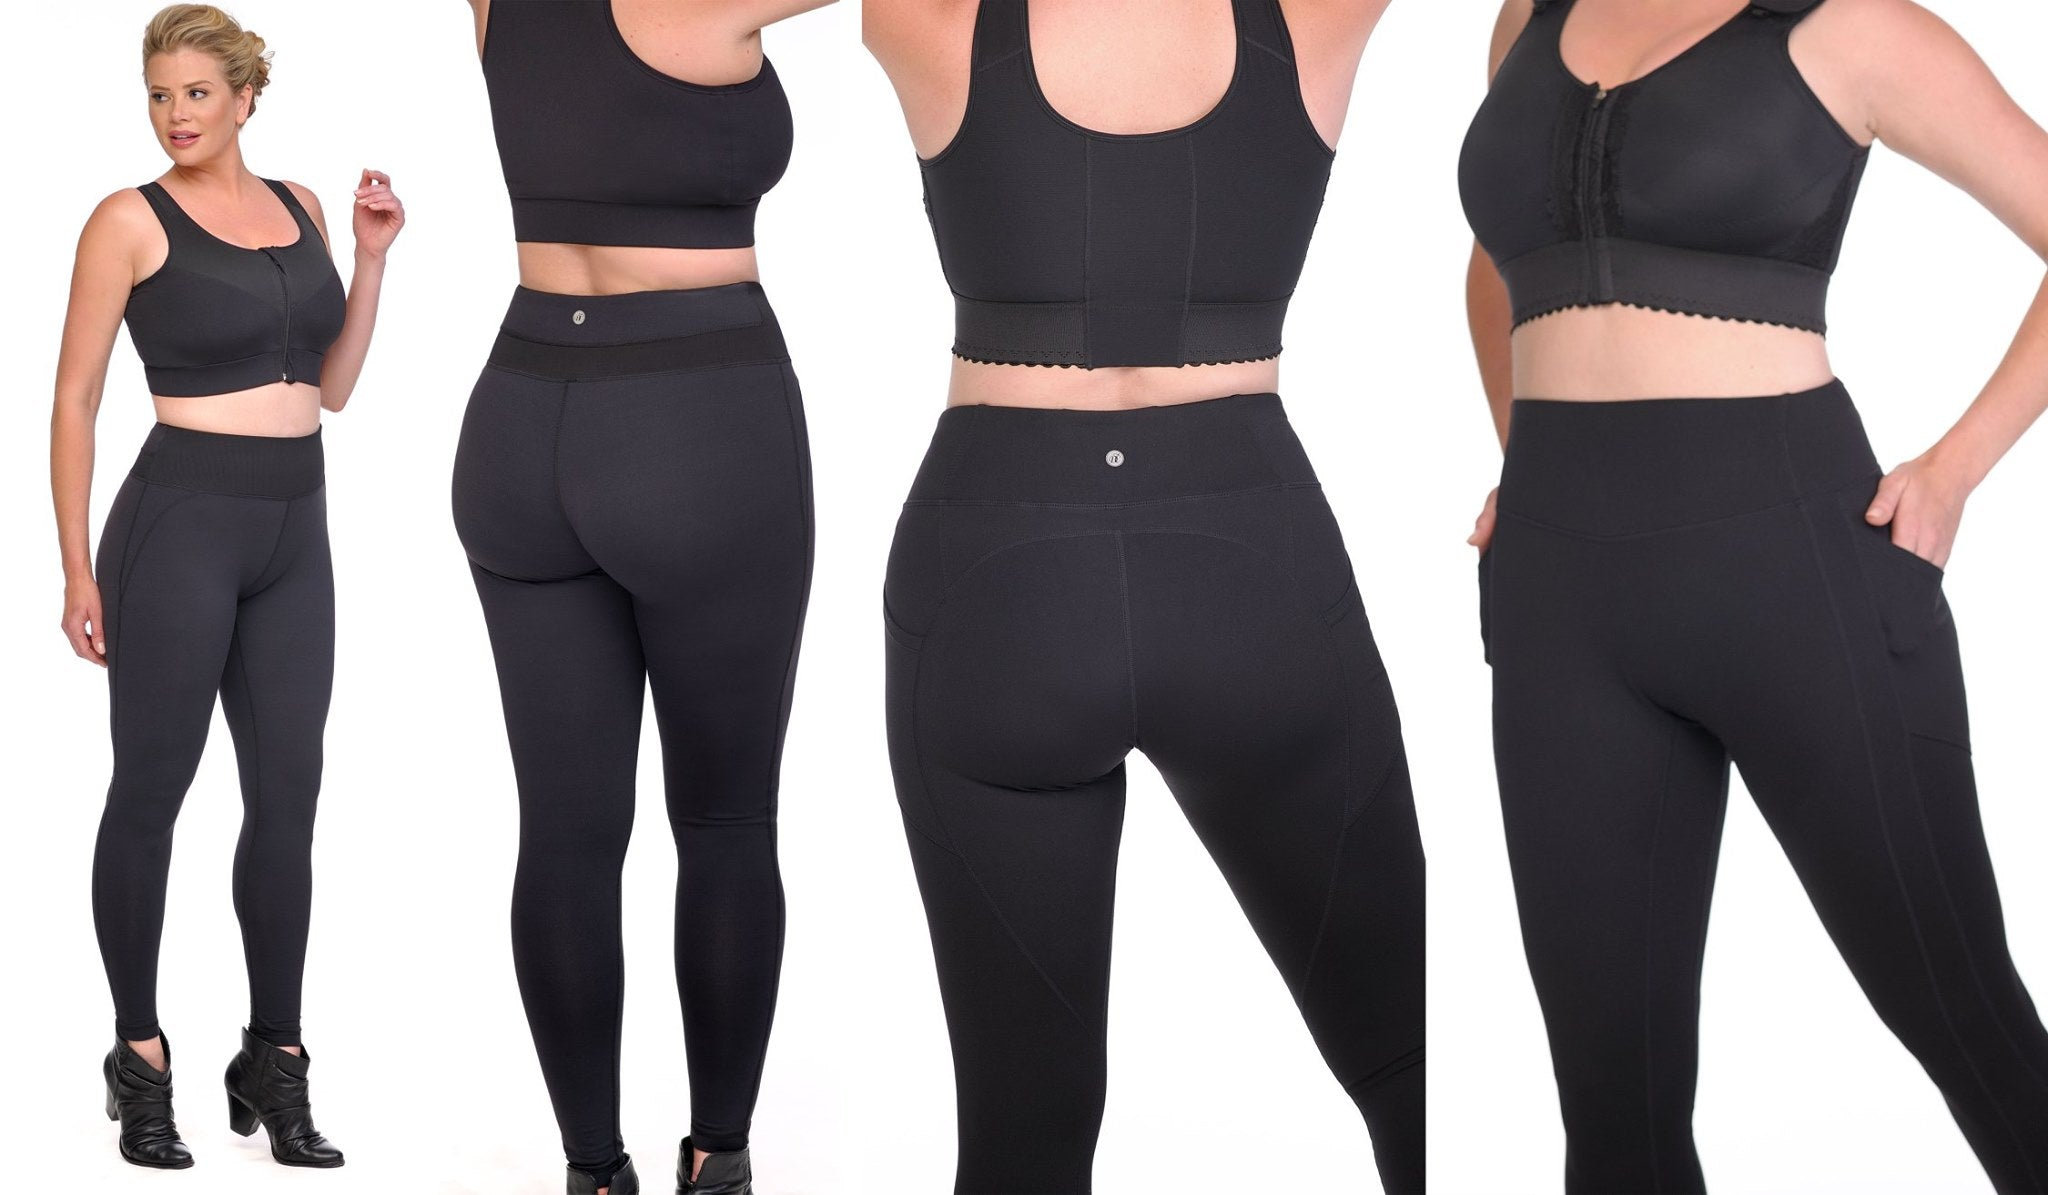 Diva's Curves Compression Leggings